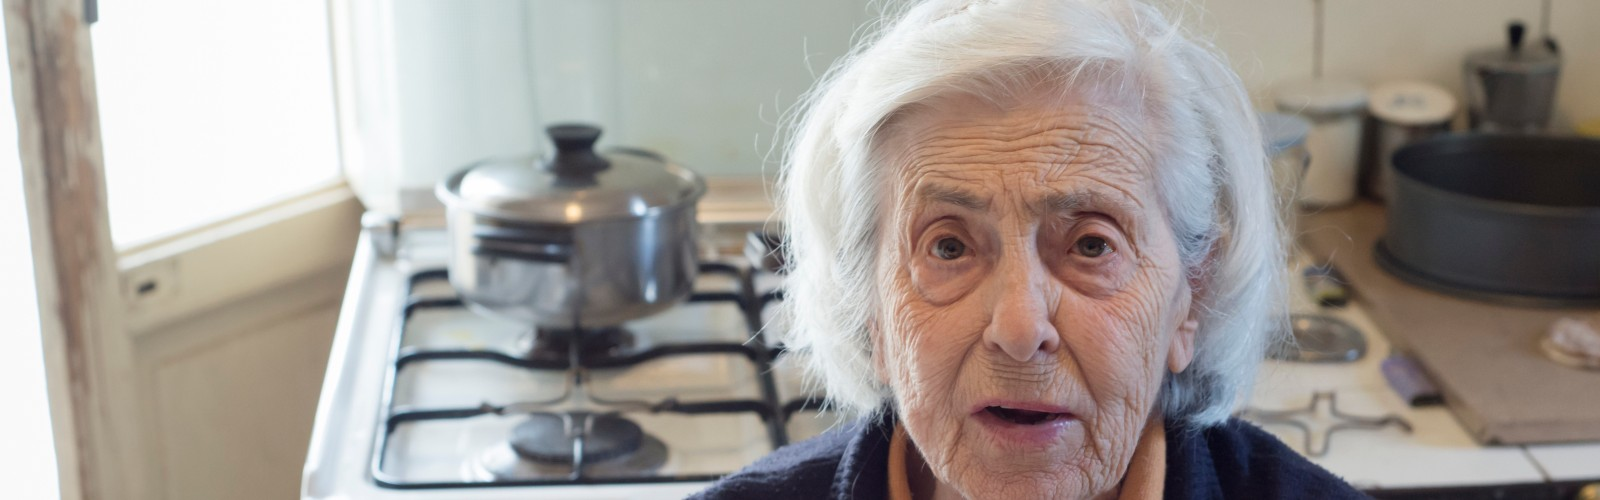 An older woman sits in her kitchen, looking concerned